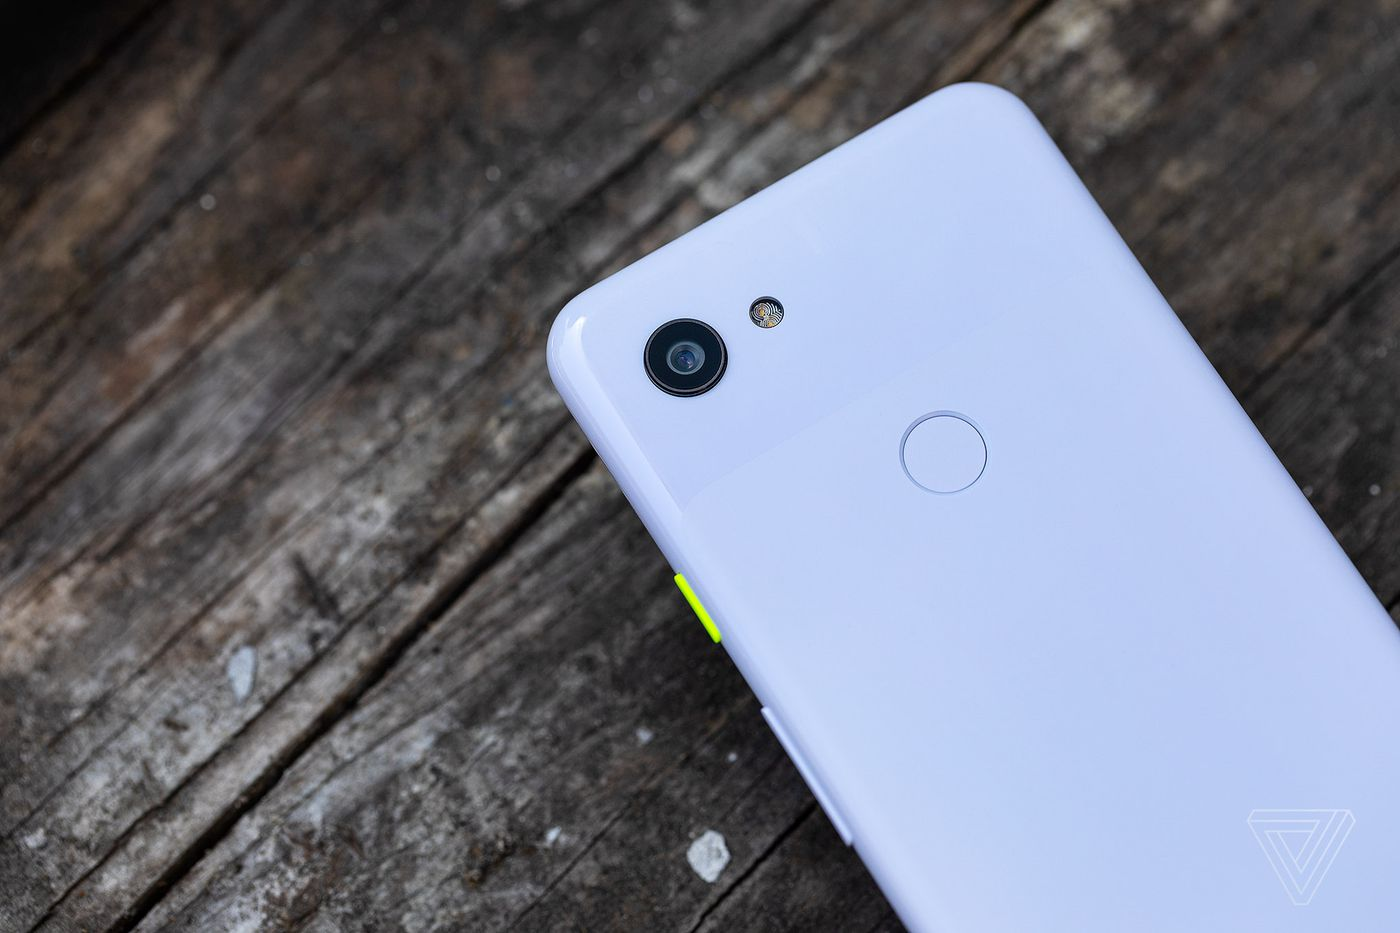 Google Pixel 3A review: a $399 phone with a great camera